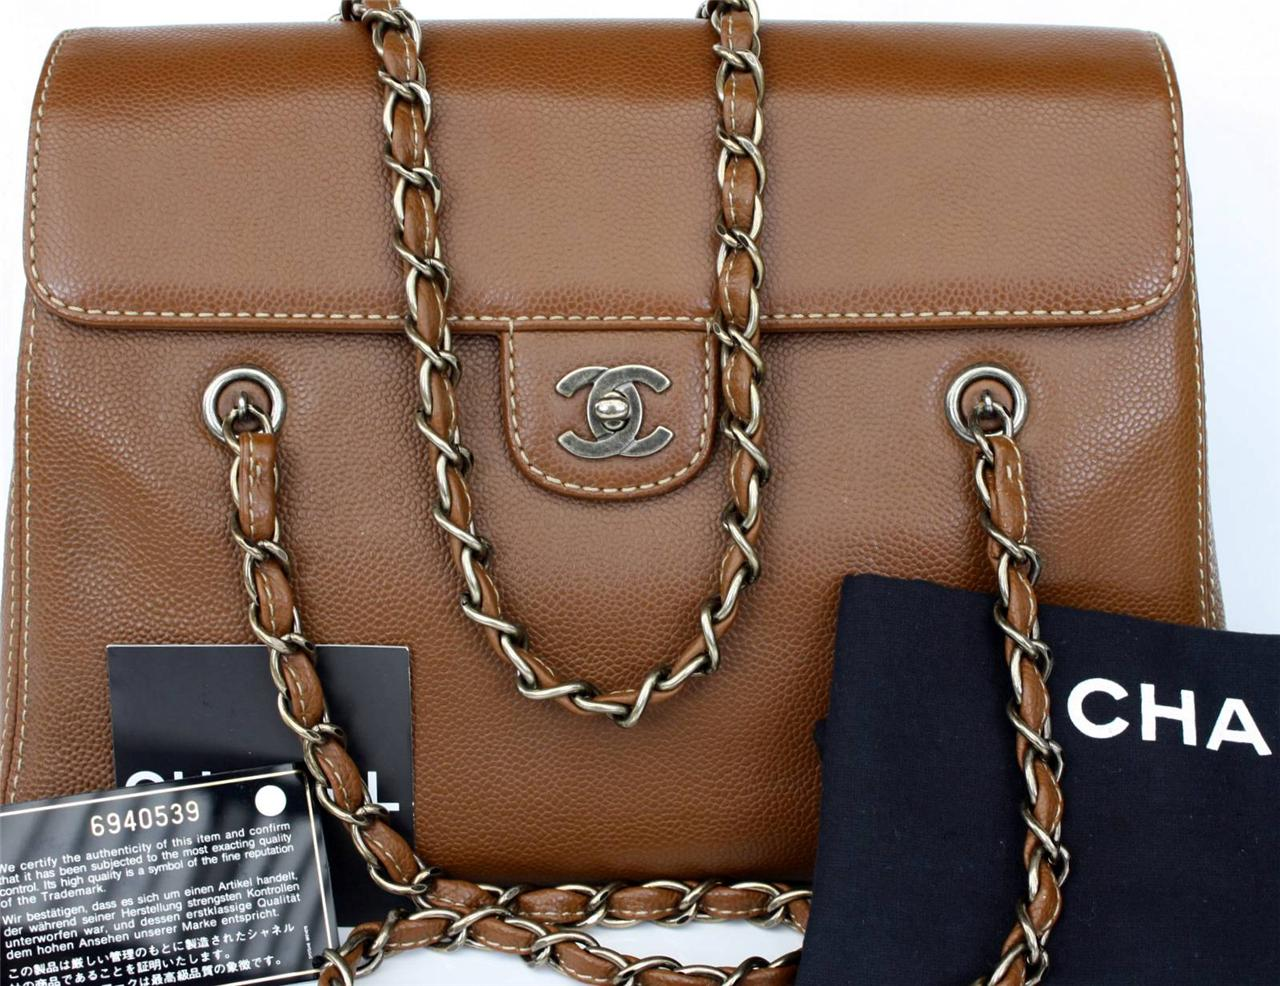 AUTH-CHANEL-Brown-Caviar-Leather-CC-Shoulder-Bag-Tote